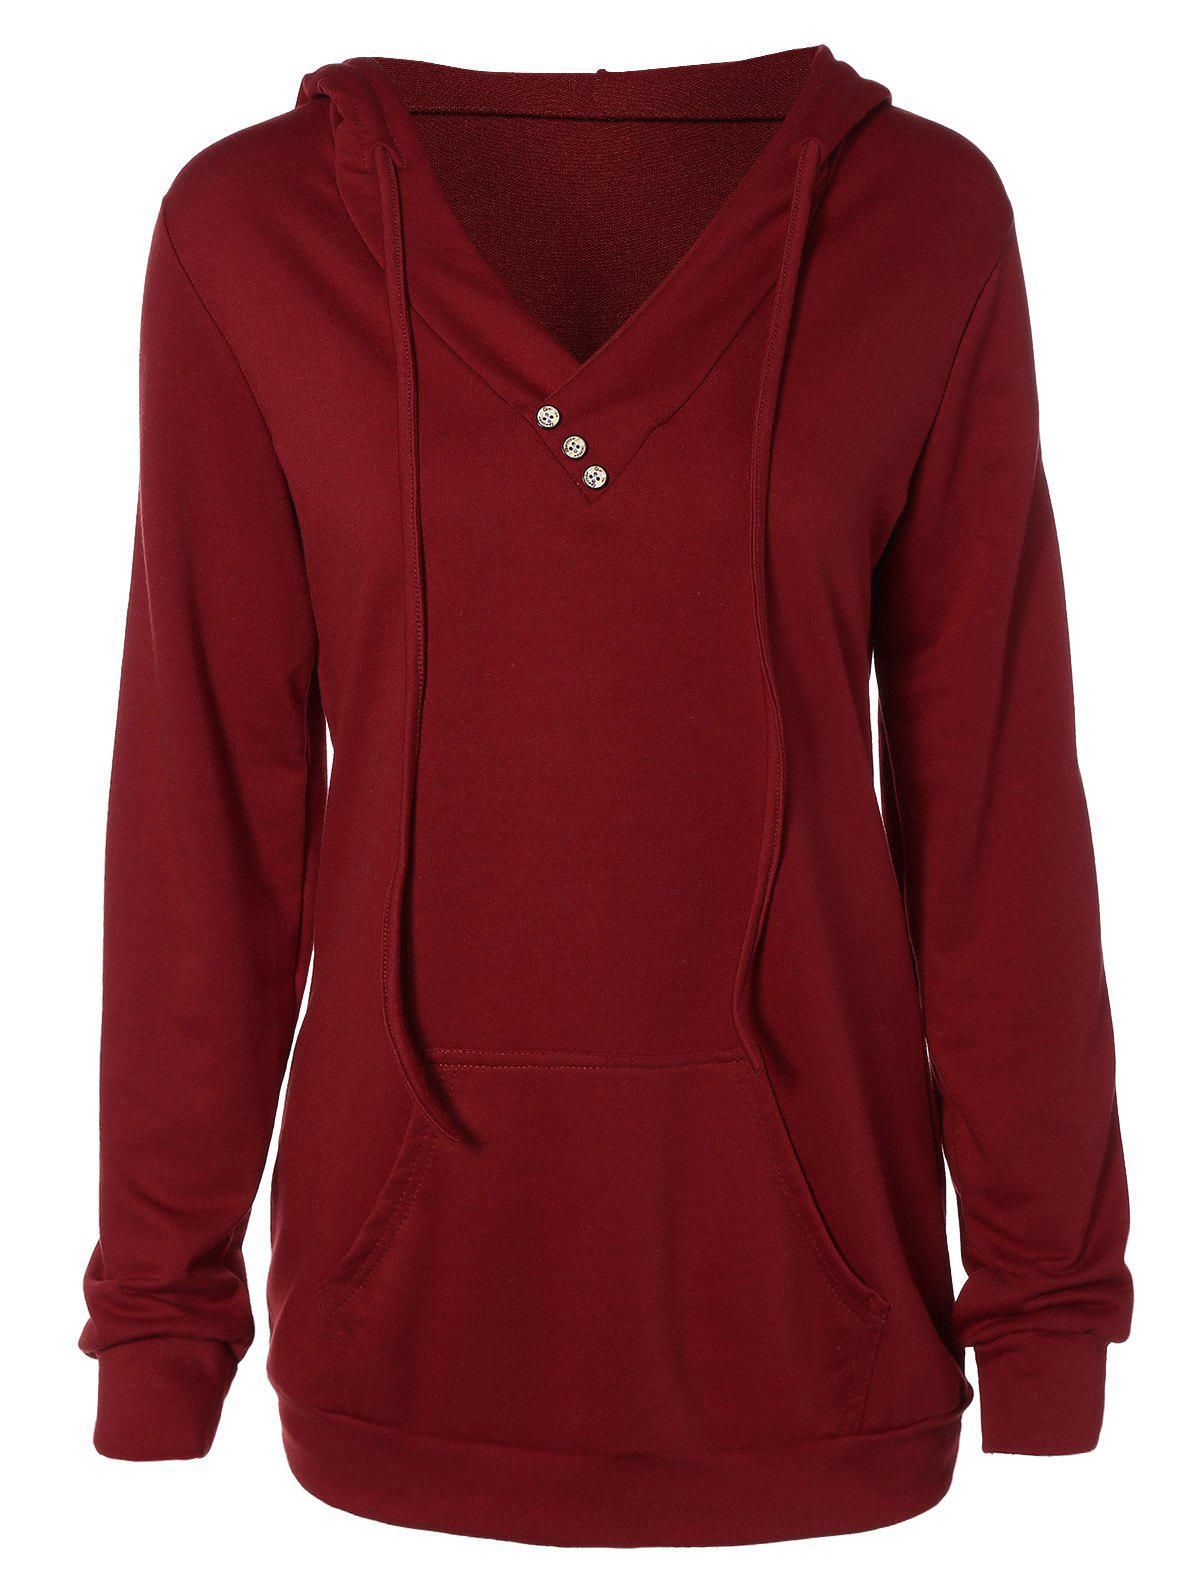 Buttoned Plus Size Drawstring HoodieWOMEN<br><br>Size: 2XL; Color: DEEP RED; Material: Polyester; Shirt Length: Regular; Sleeve Length: Full; Collar: Hooded; Style: Fashion; Season: Fall,Spring; Embellishment: Button; Pattern Type: Solid; Weight: 0.432kg; Package Contents: 1 x Hoodie;